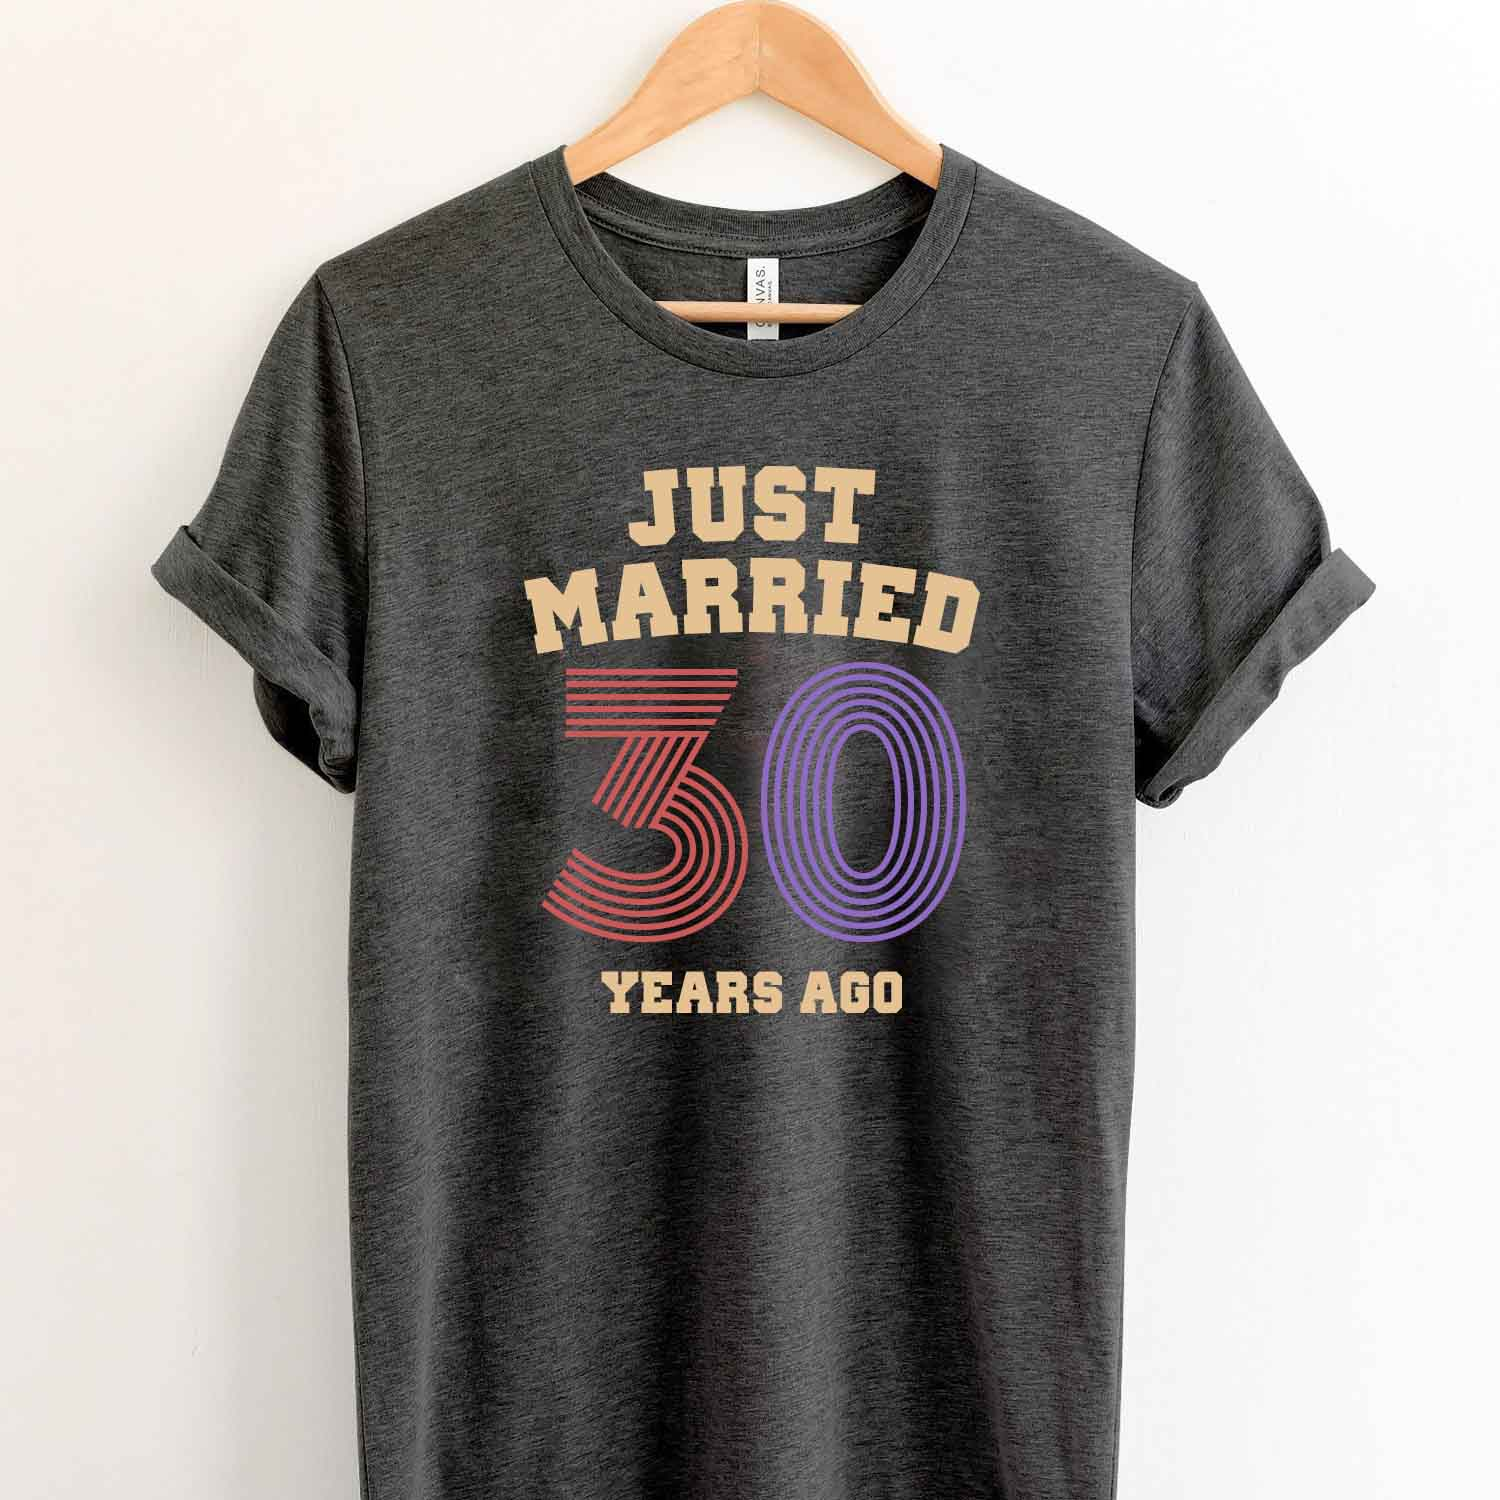 Just Married 30 Years Ago 1989 T Shirt Perfect Sweet Romantic Gift for Couple Husband Wife